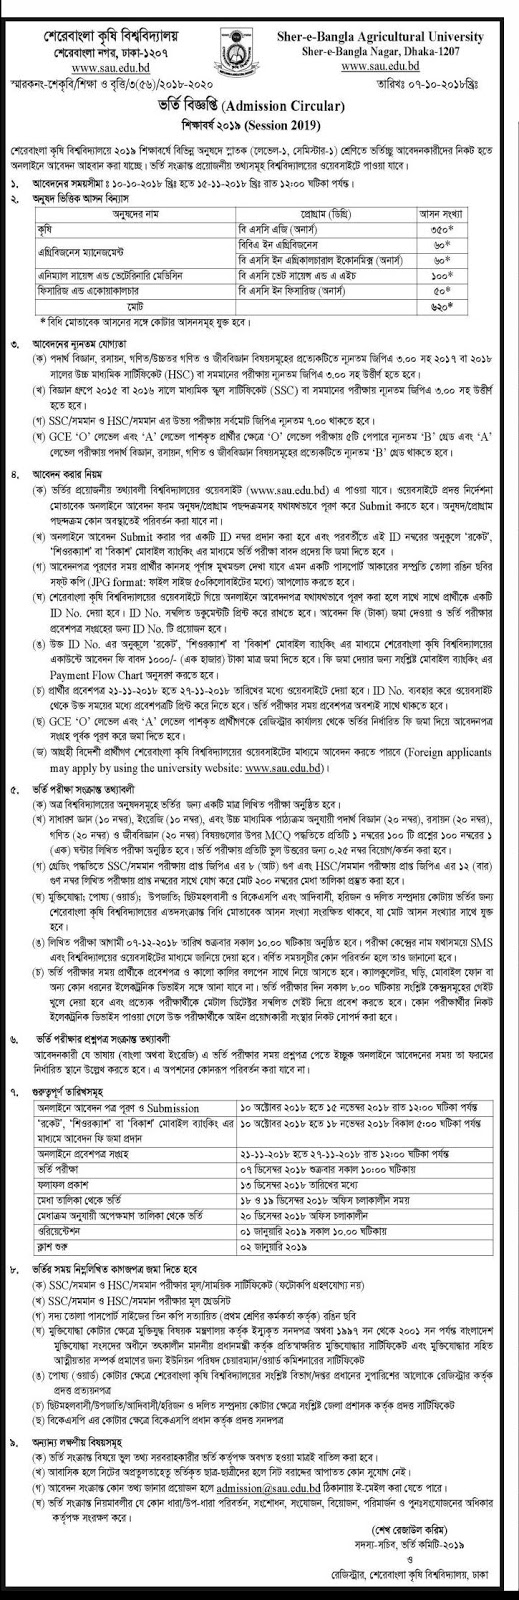 Sher-e-Bangla Agricultural University (SAU) Admission Circular 2018-2019